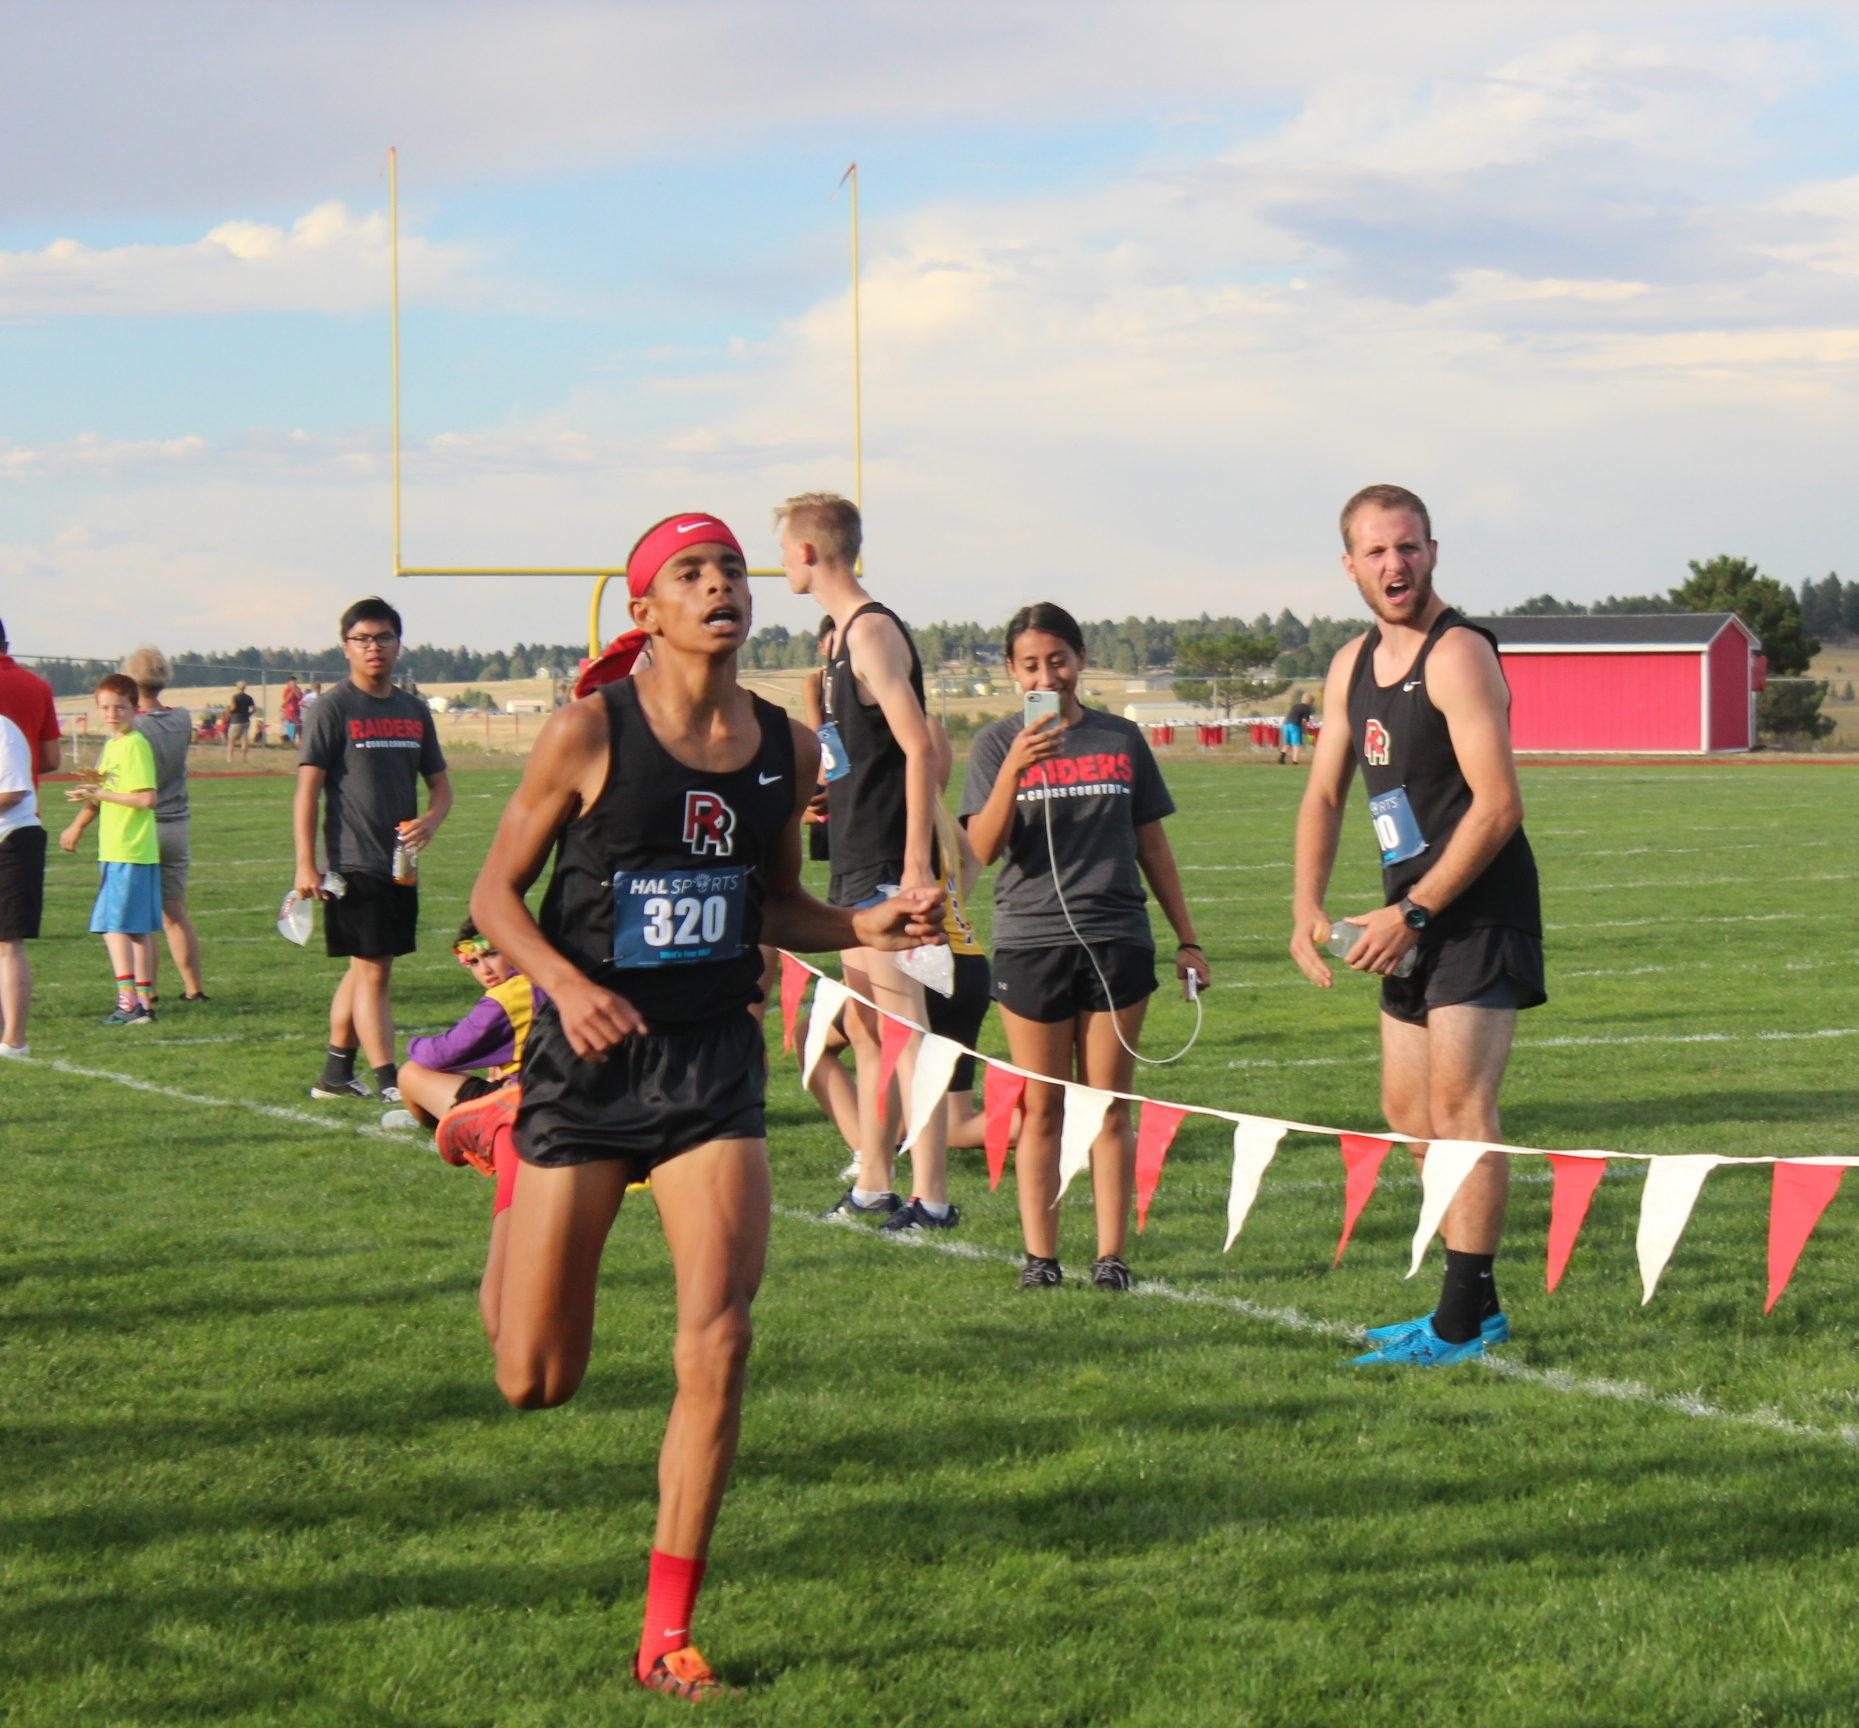 Cross country is running ahead of schedule